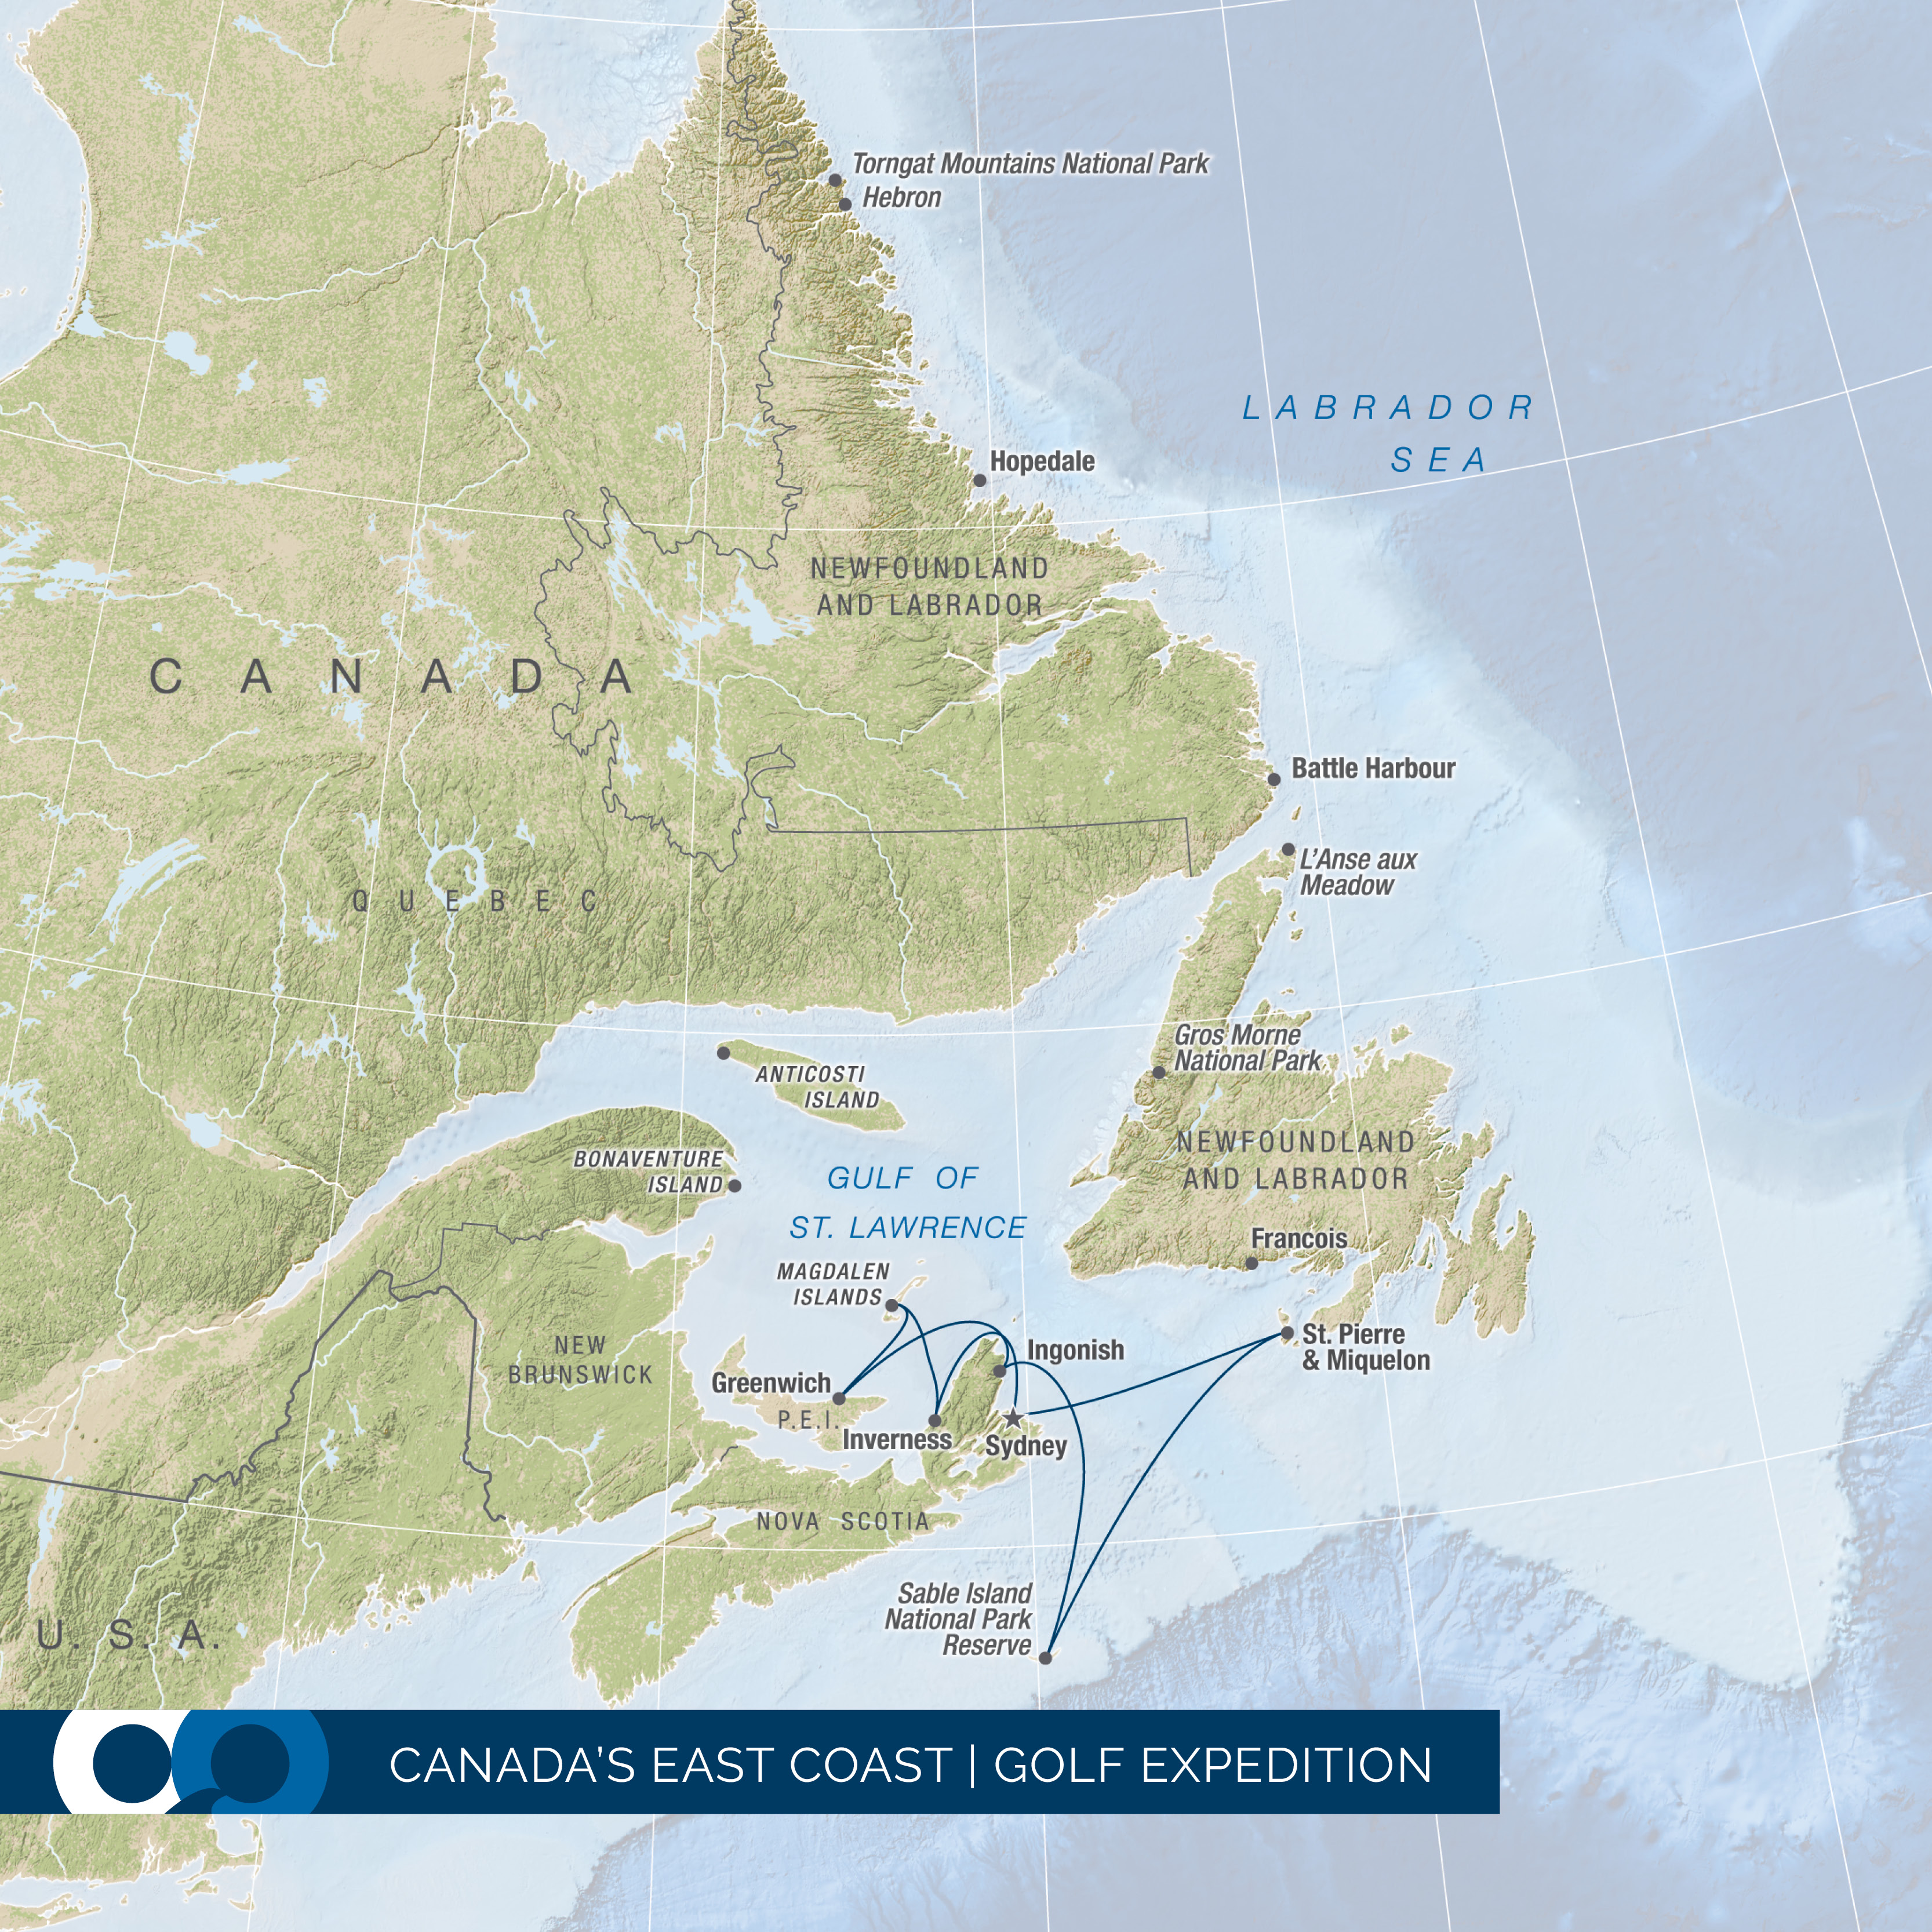 One Ocean Expeditions explores Sable Island, Nova Scotia and Prince Edward Island on a seven night expedition cruise while stopping at internationally renowned golf courses.